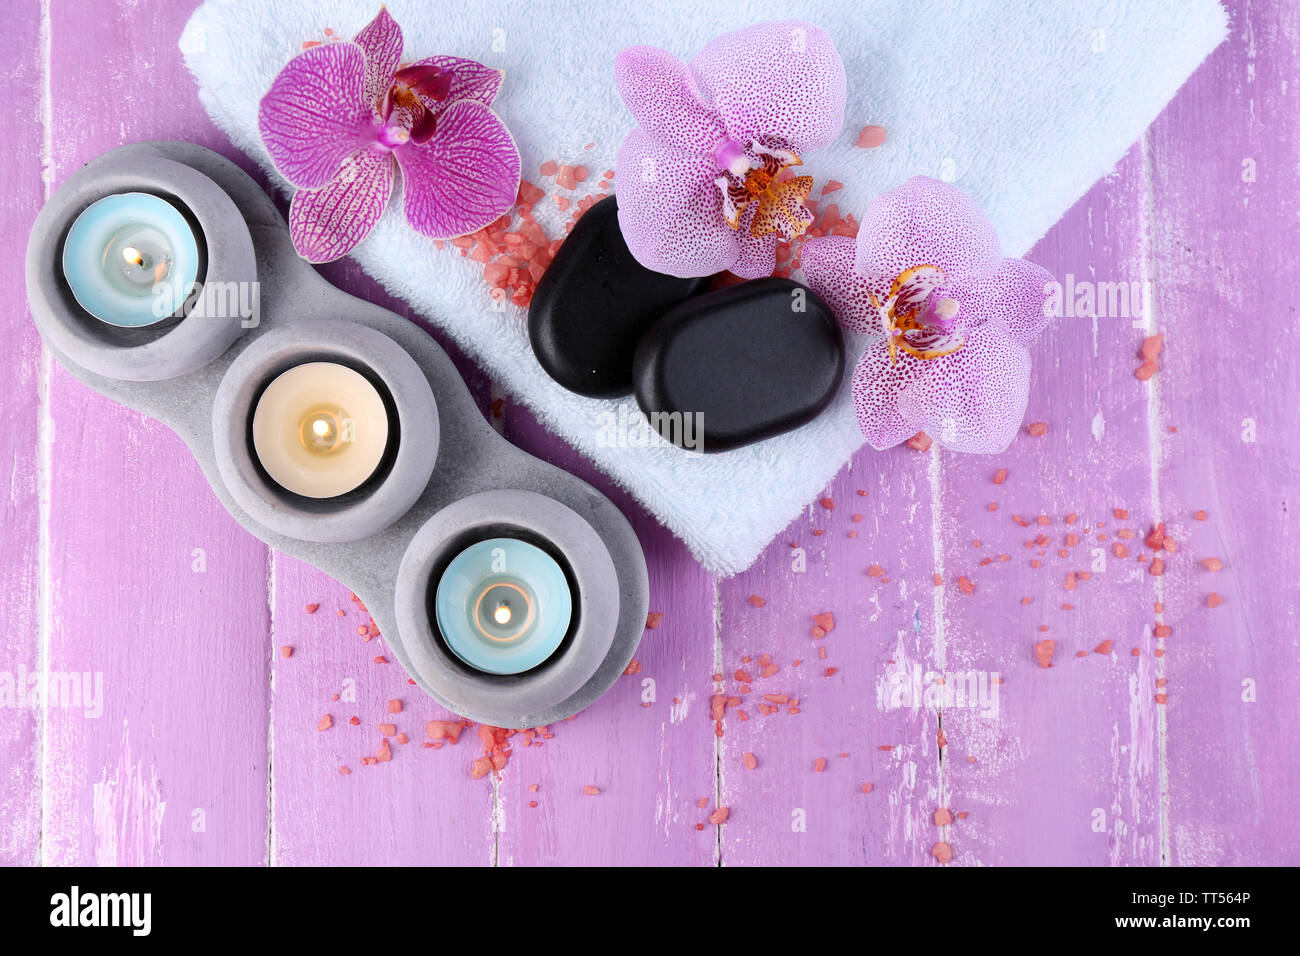 Orchid flowers, spa stones, candles and towel on color wooden background Stock Photo